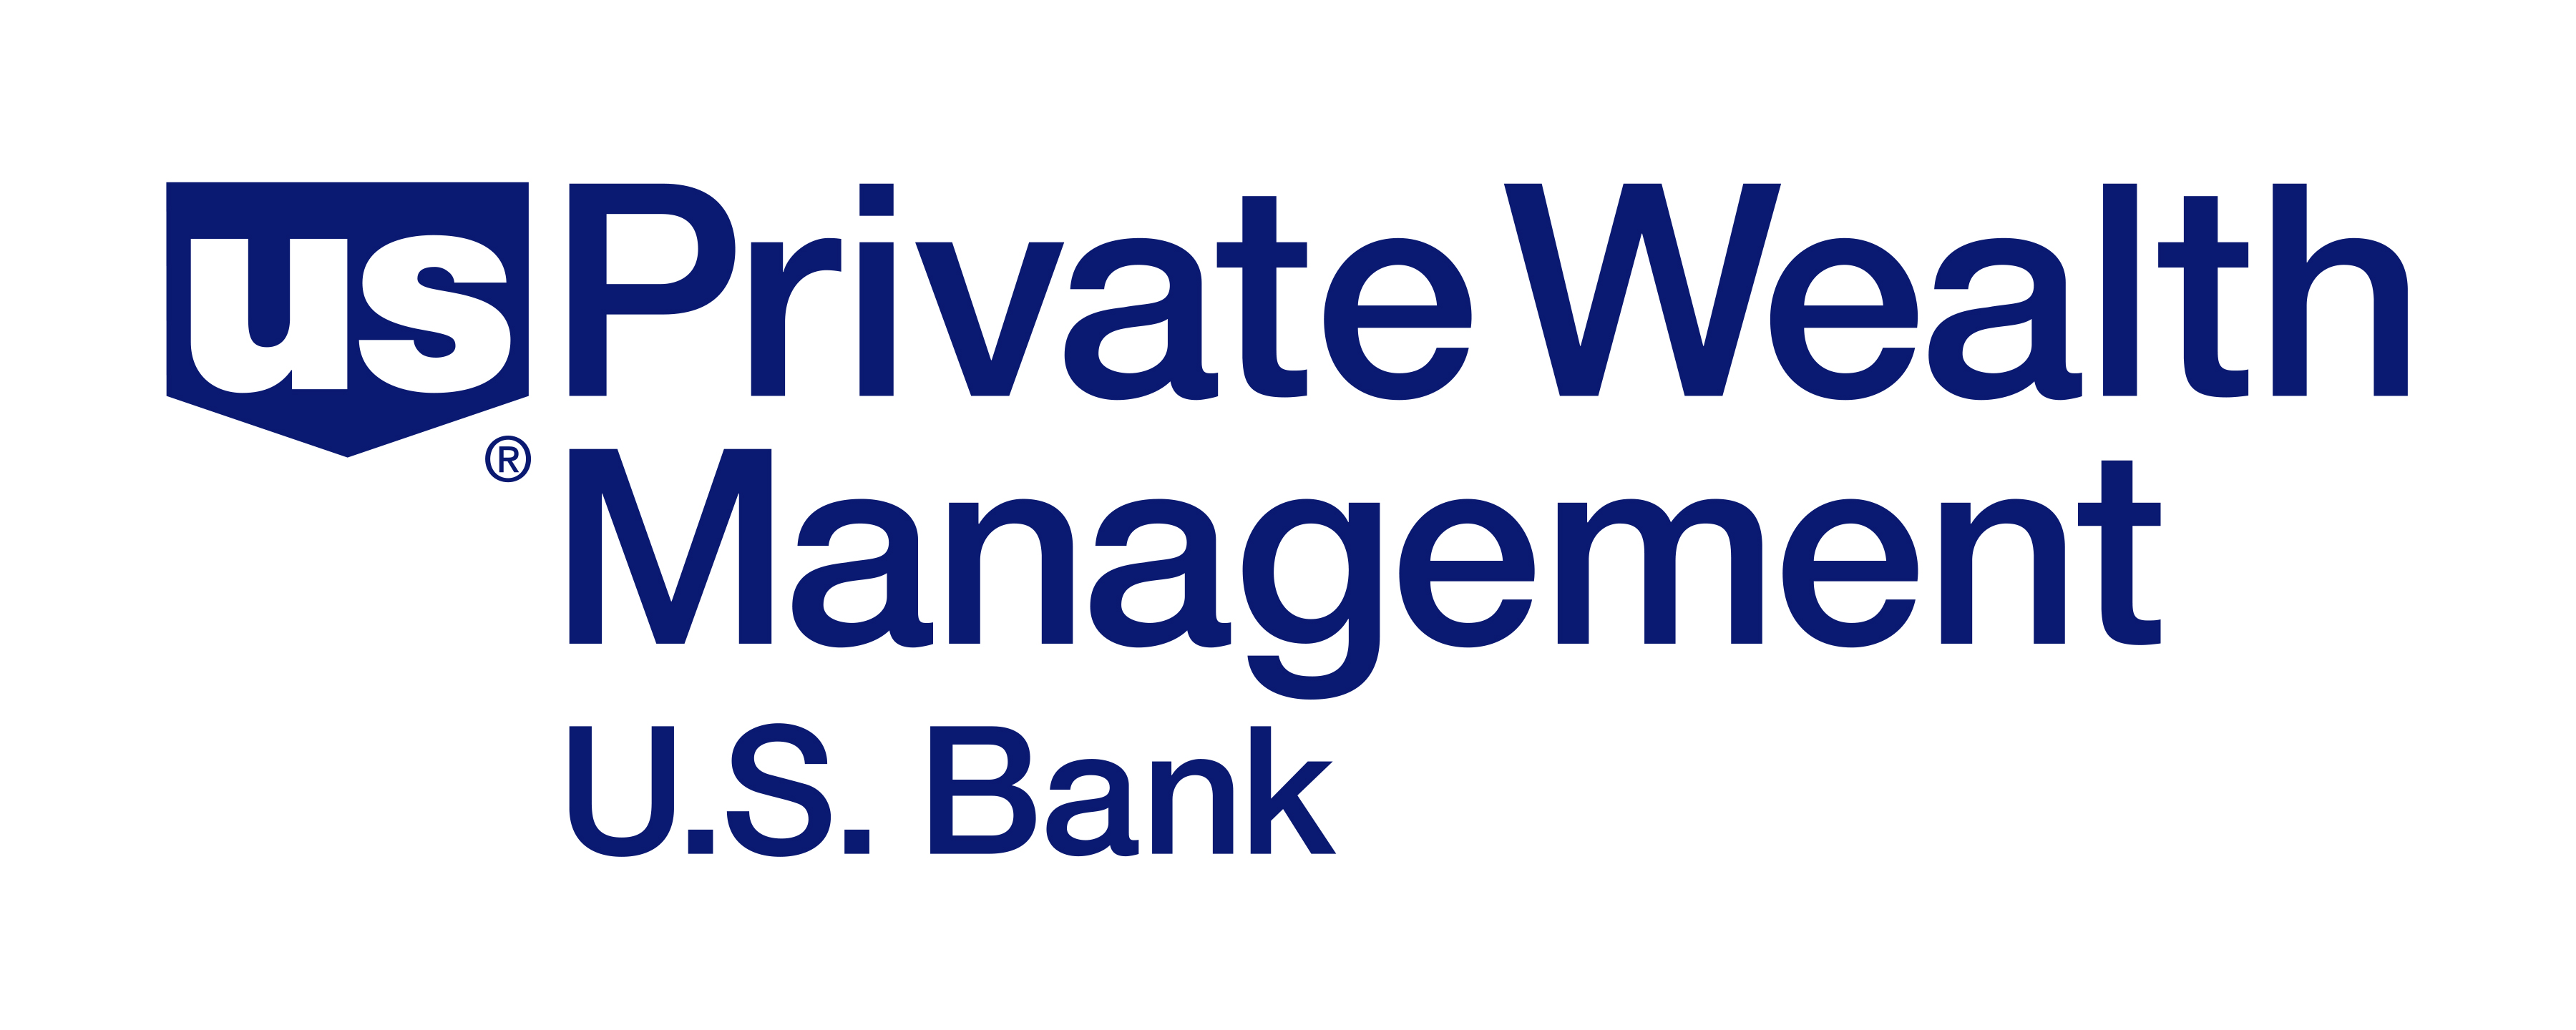 U.S. Bank Private Wealth Management logo